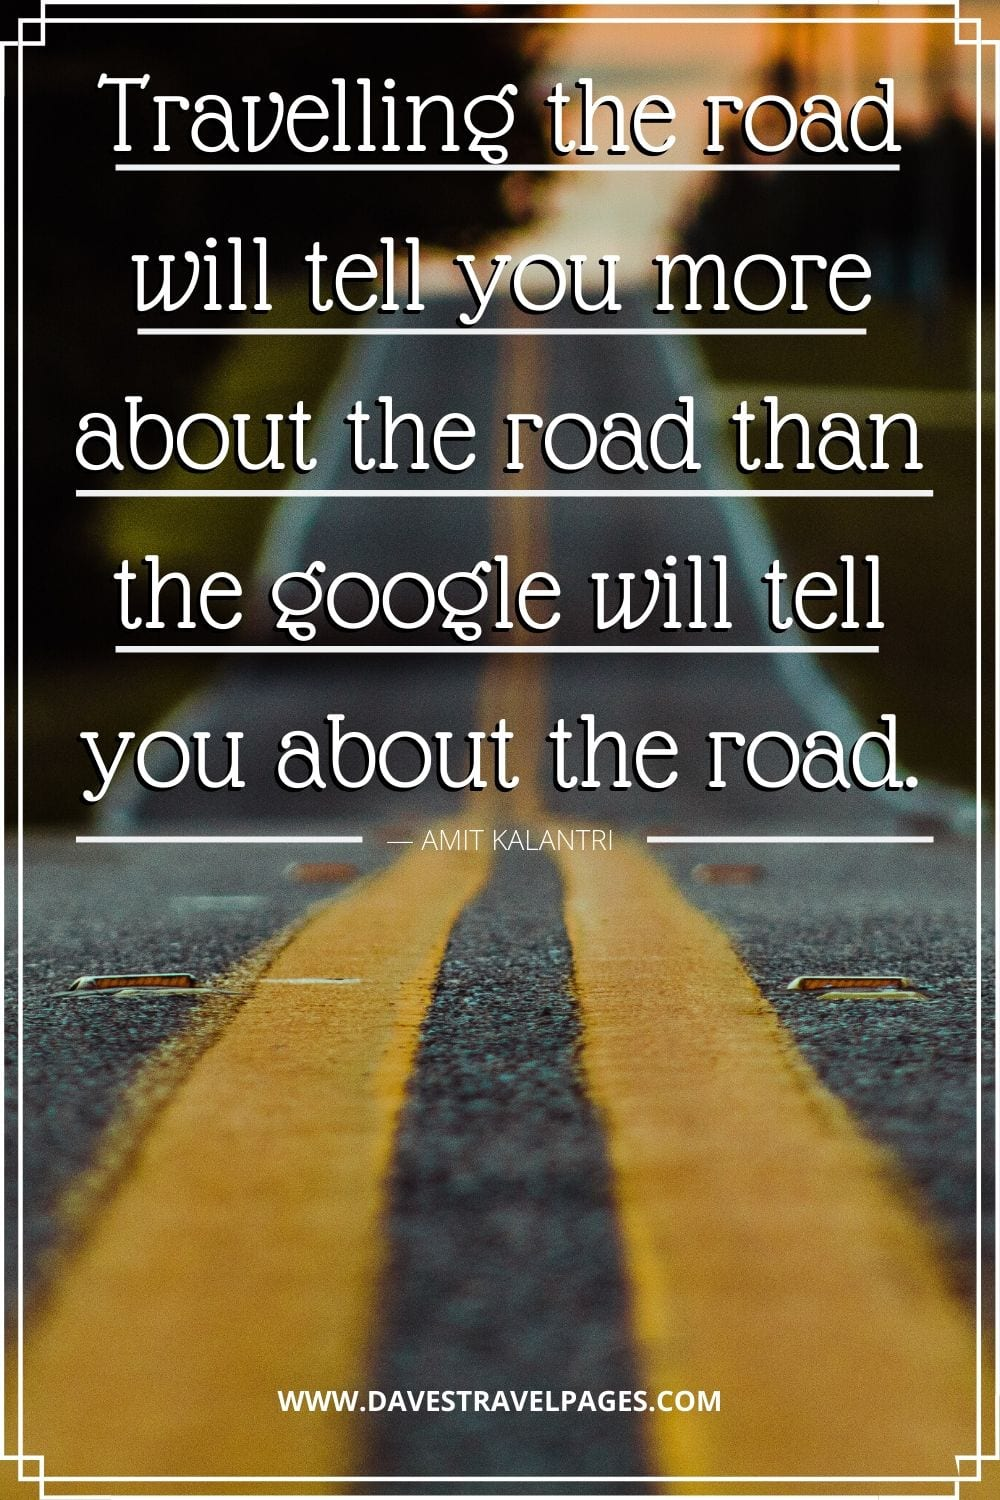 Quotes about traveling - Travelling the road will tell you more about the road than the google will tell you about the road. ― Amit Kalantri